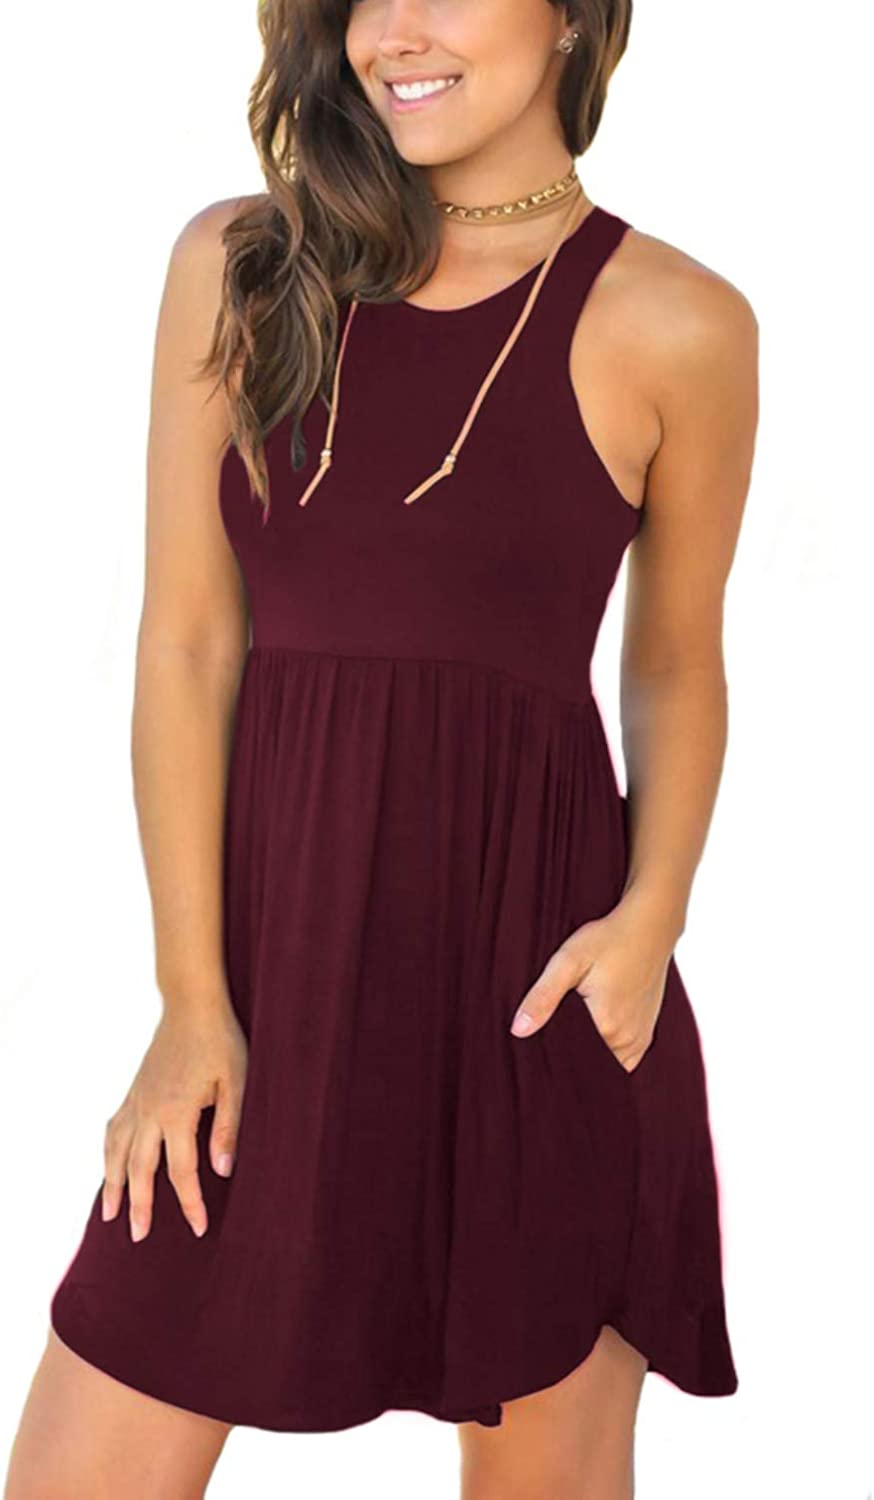 Unbranded Women's Sleeveless Loose Plain Dresses Short Dr Casual Al sold out. Inexpensive